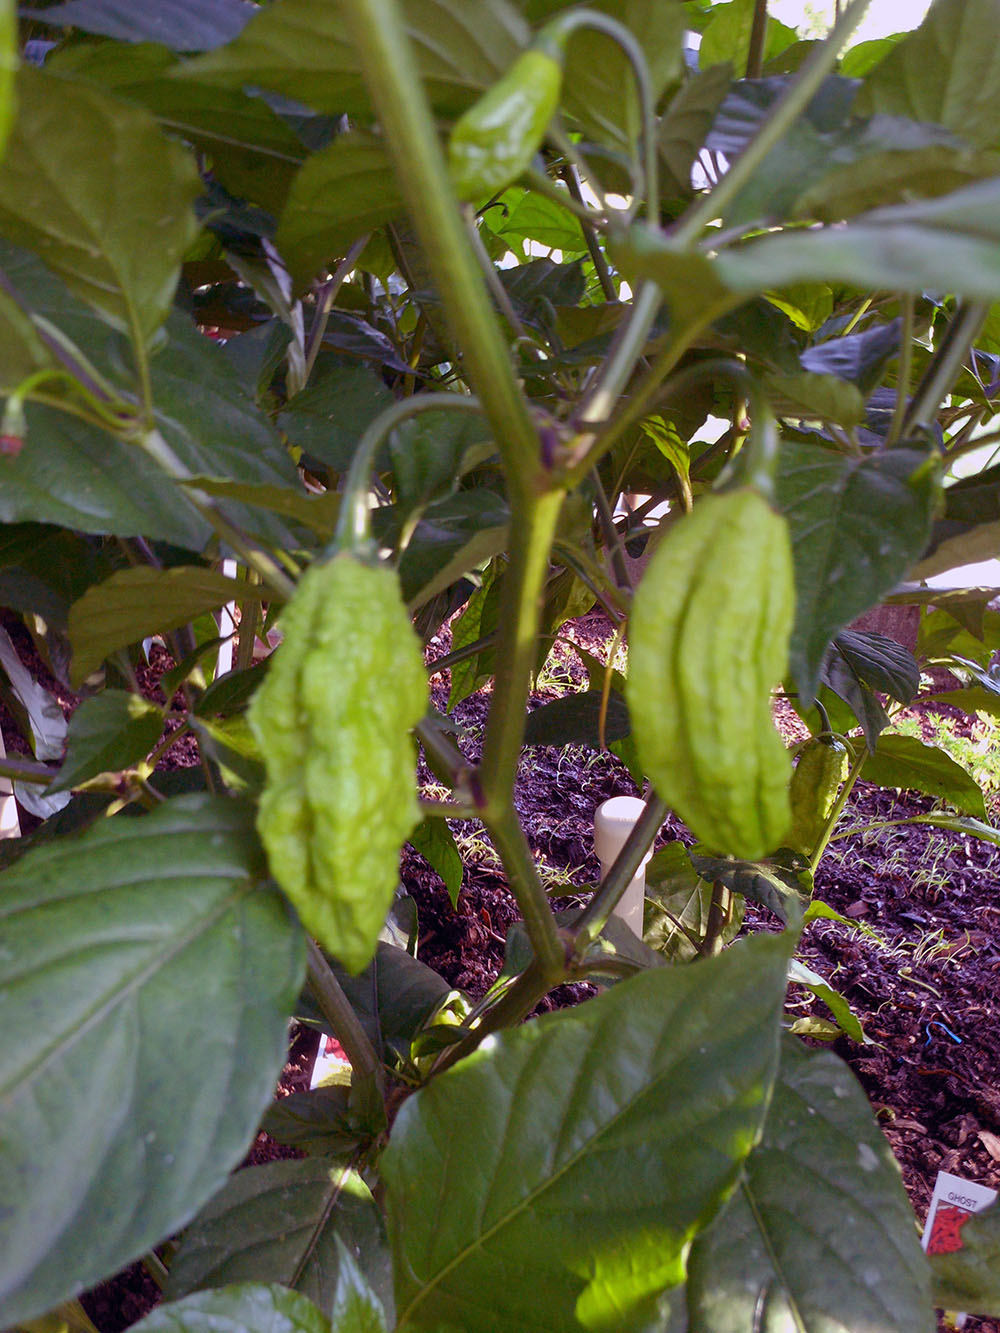 06-25-2015 Garden 02 Ghost HOT Peppers 01